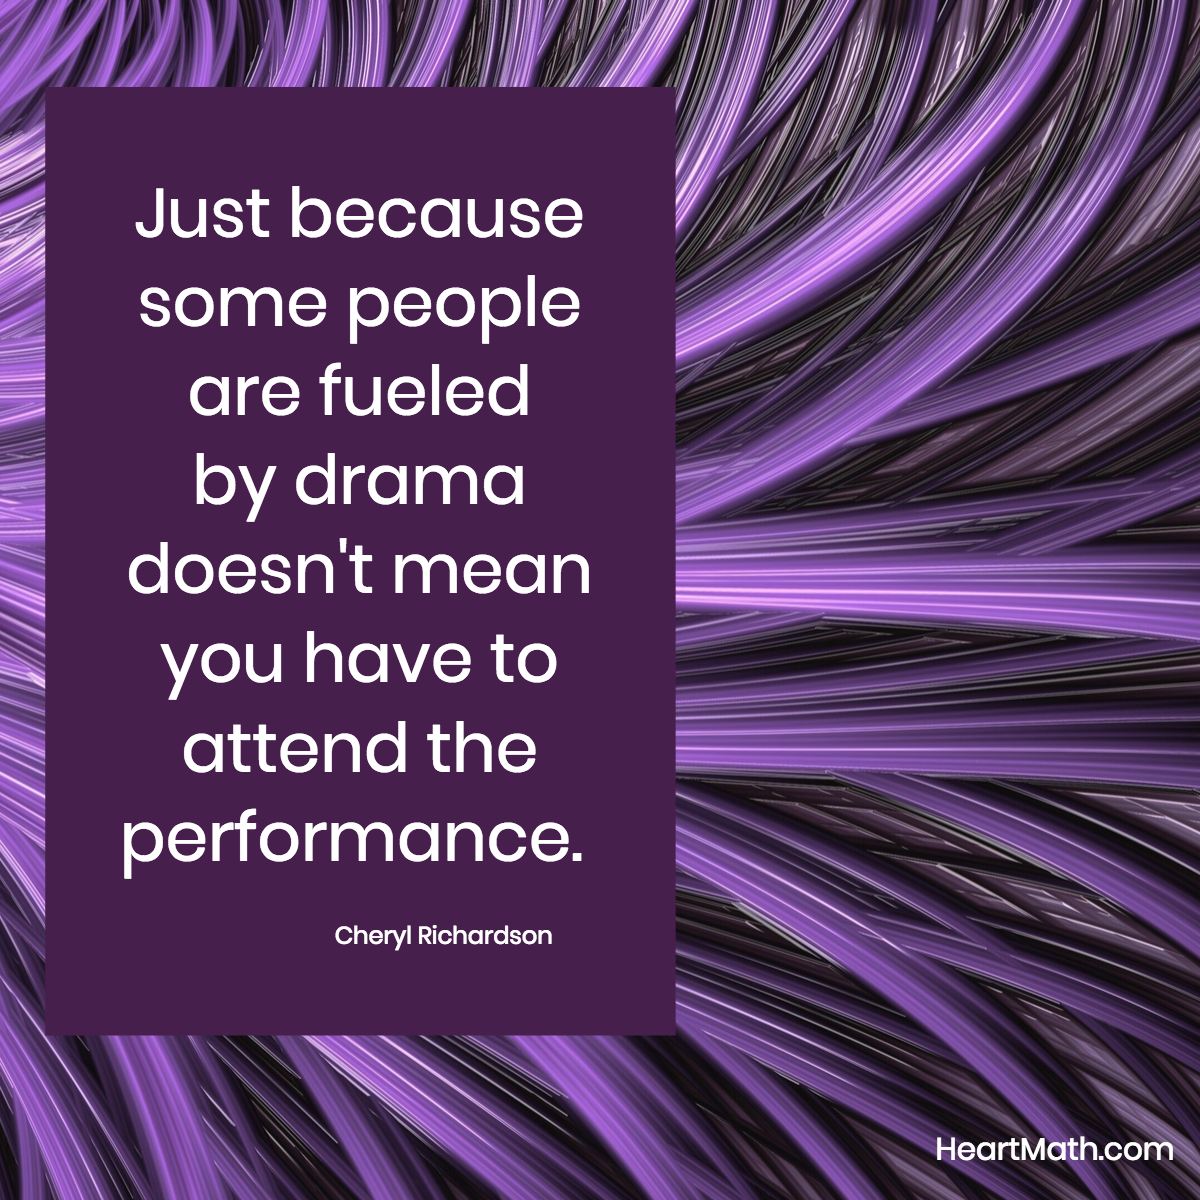 We can send compassion and not participate in the performance. #compassion #addheart #drama #uplift #patience